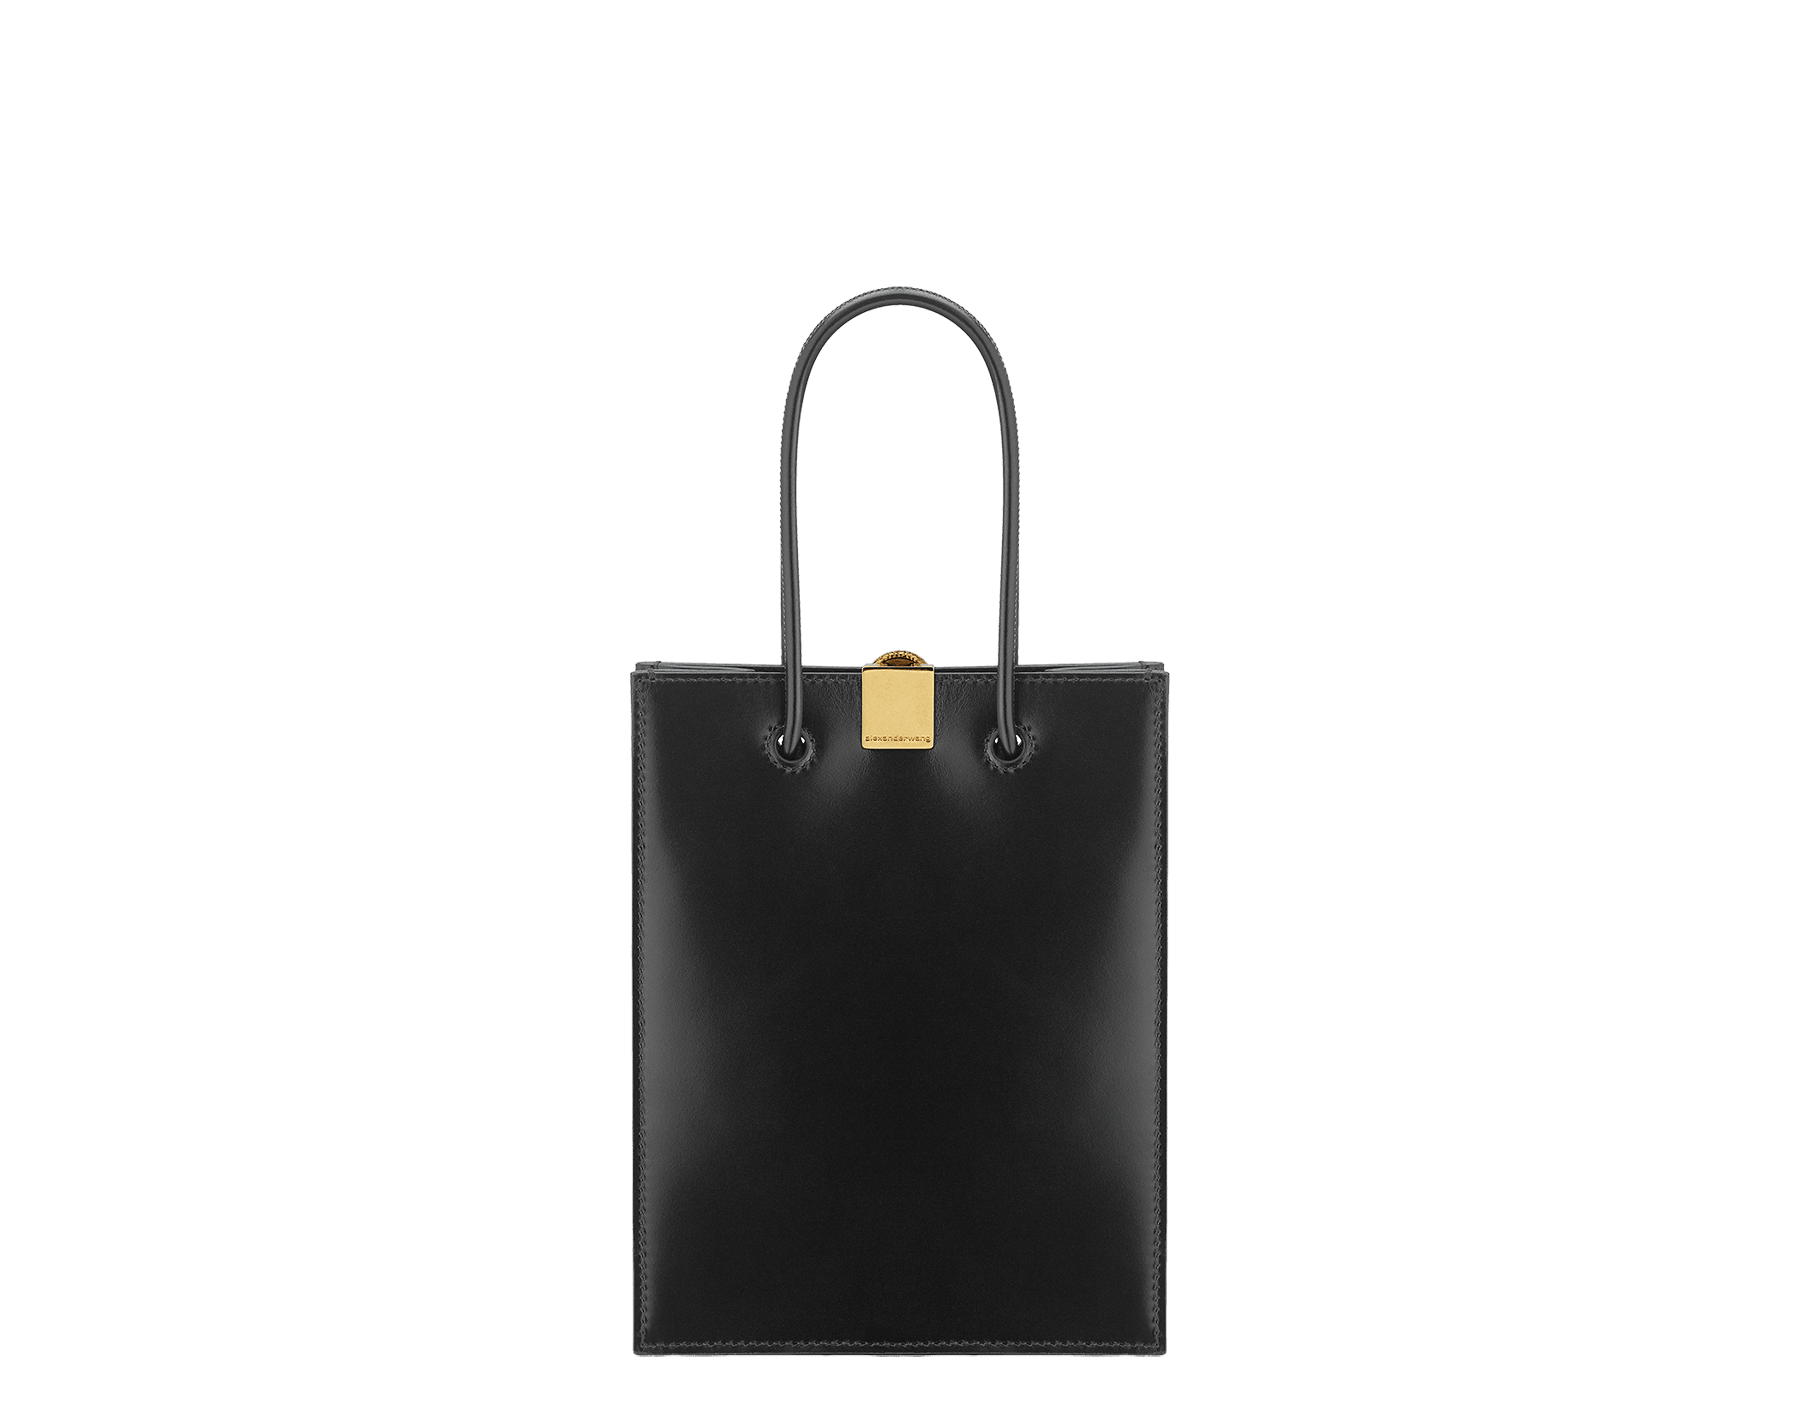 Alexander Wang x Bvlgari mini shopping tote bag in black smooth calf leather. New Serpenti head closure in antique gold plated brass with tempting red enamel eyes. Limited edition. 288726 image 3